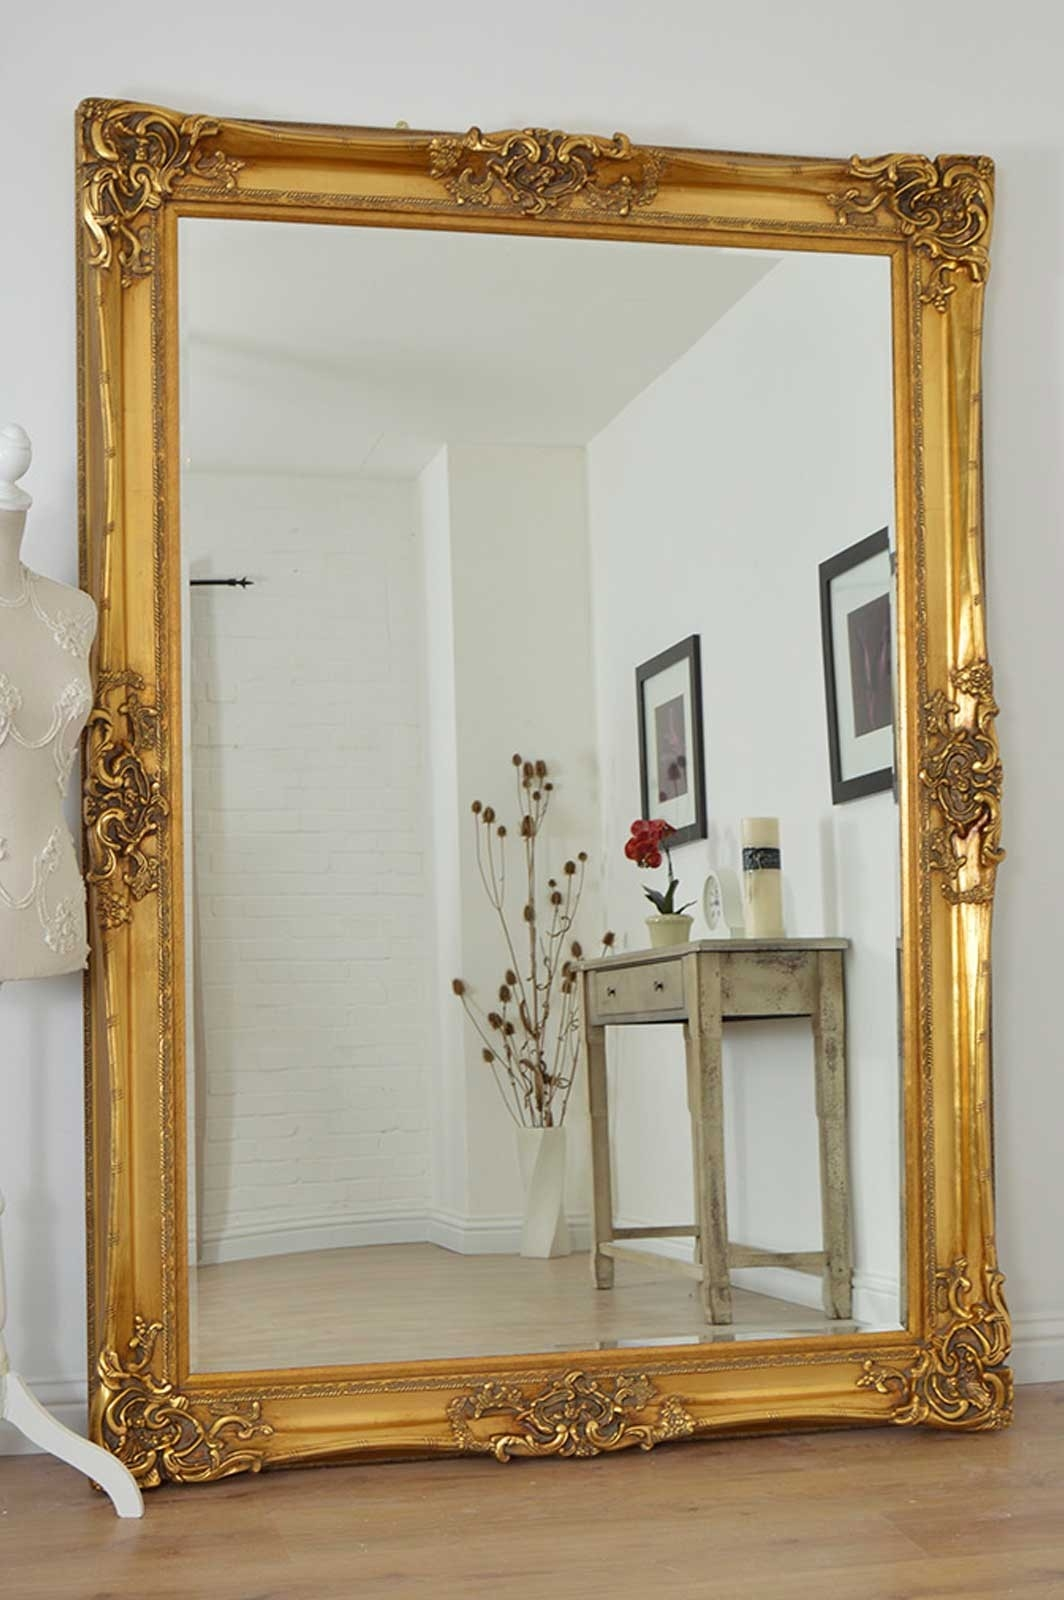 Large Gold Very Ornate Antique Design Wall Mirror 7ft X 5ft 213cm Within Gold Antique Mirrors (View 4 of 15)